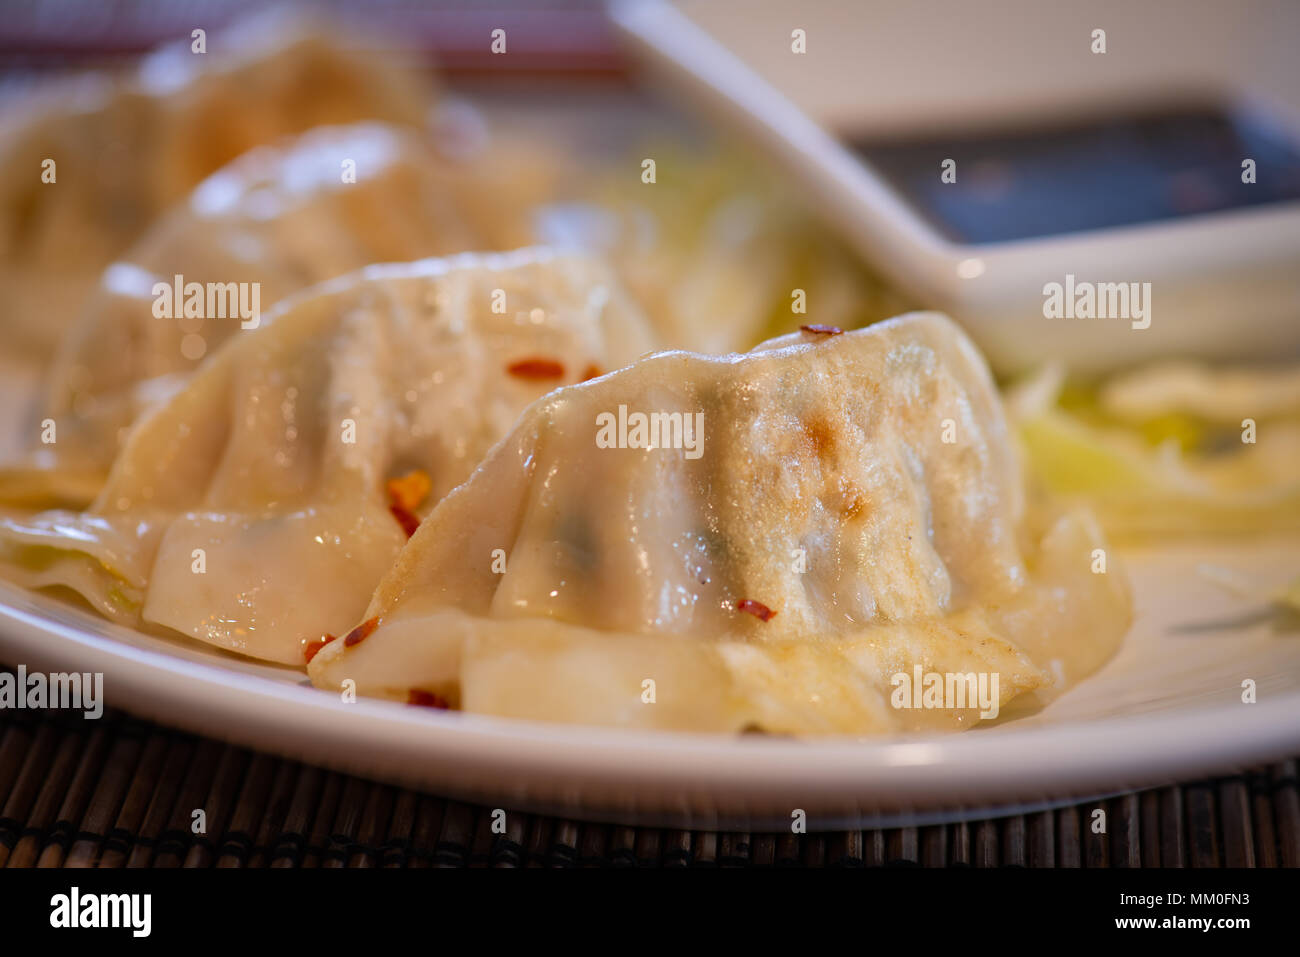 Plate Of Pork And Vegetable Chinese Potsticker Dumplings With